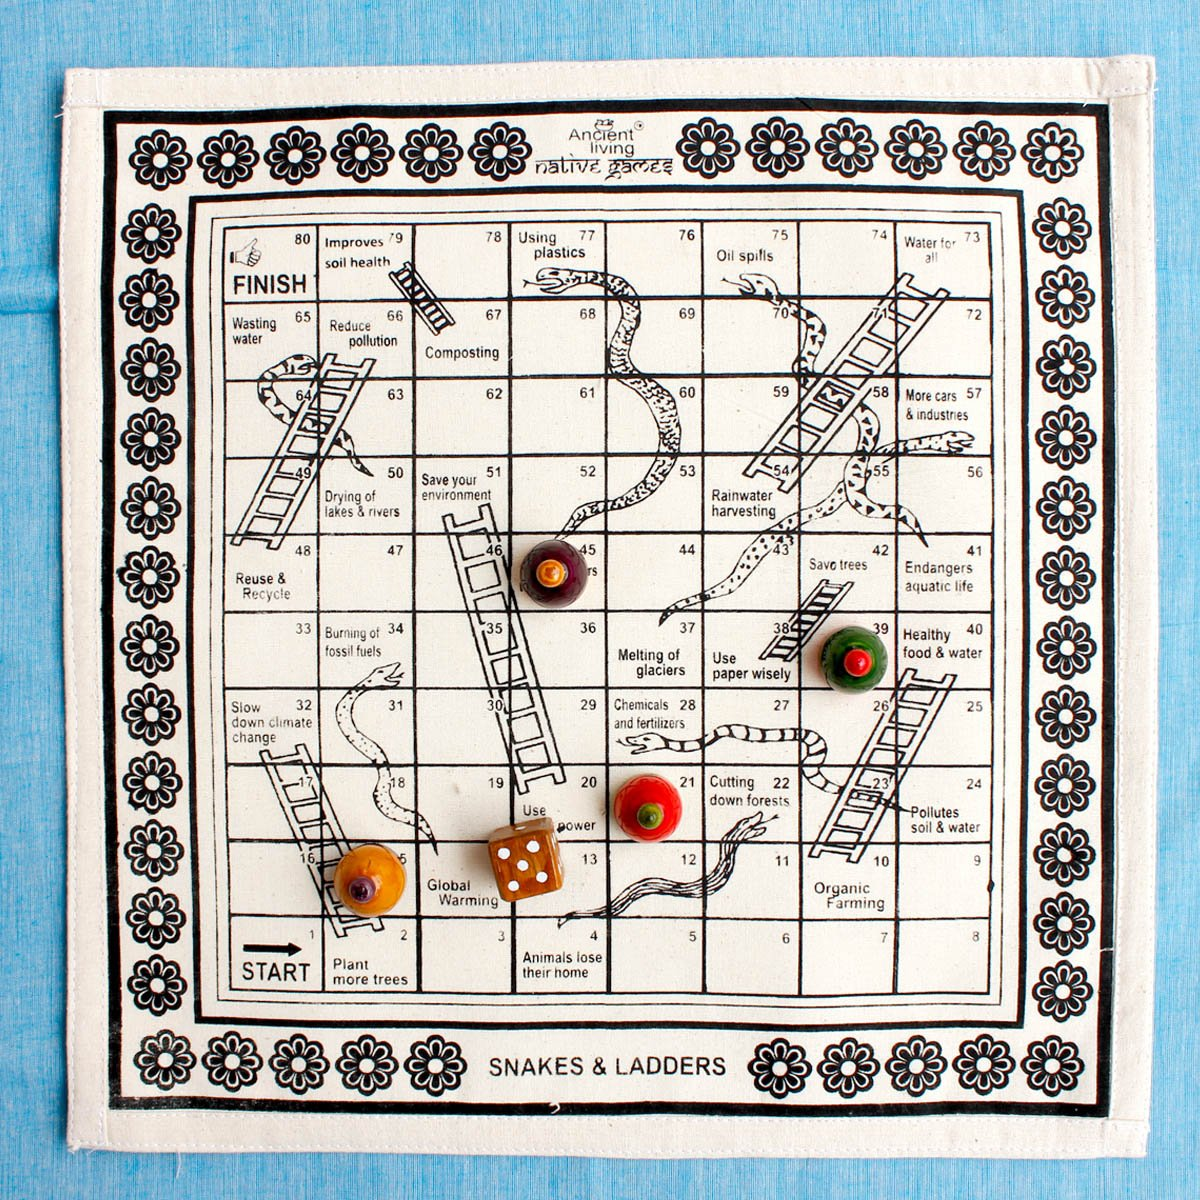 Snakes & Ladders Native Game